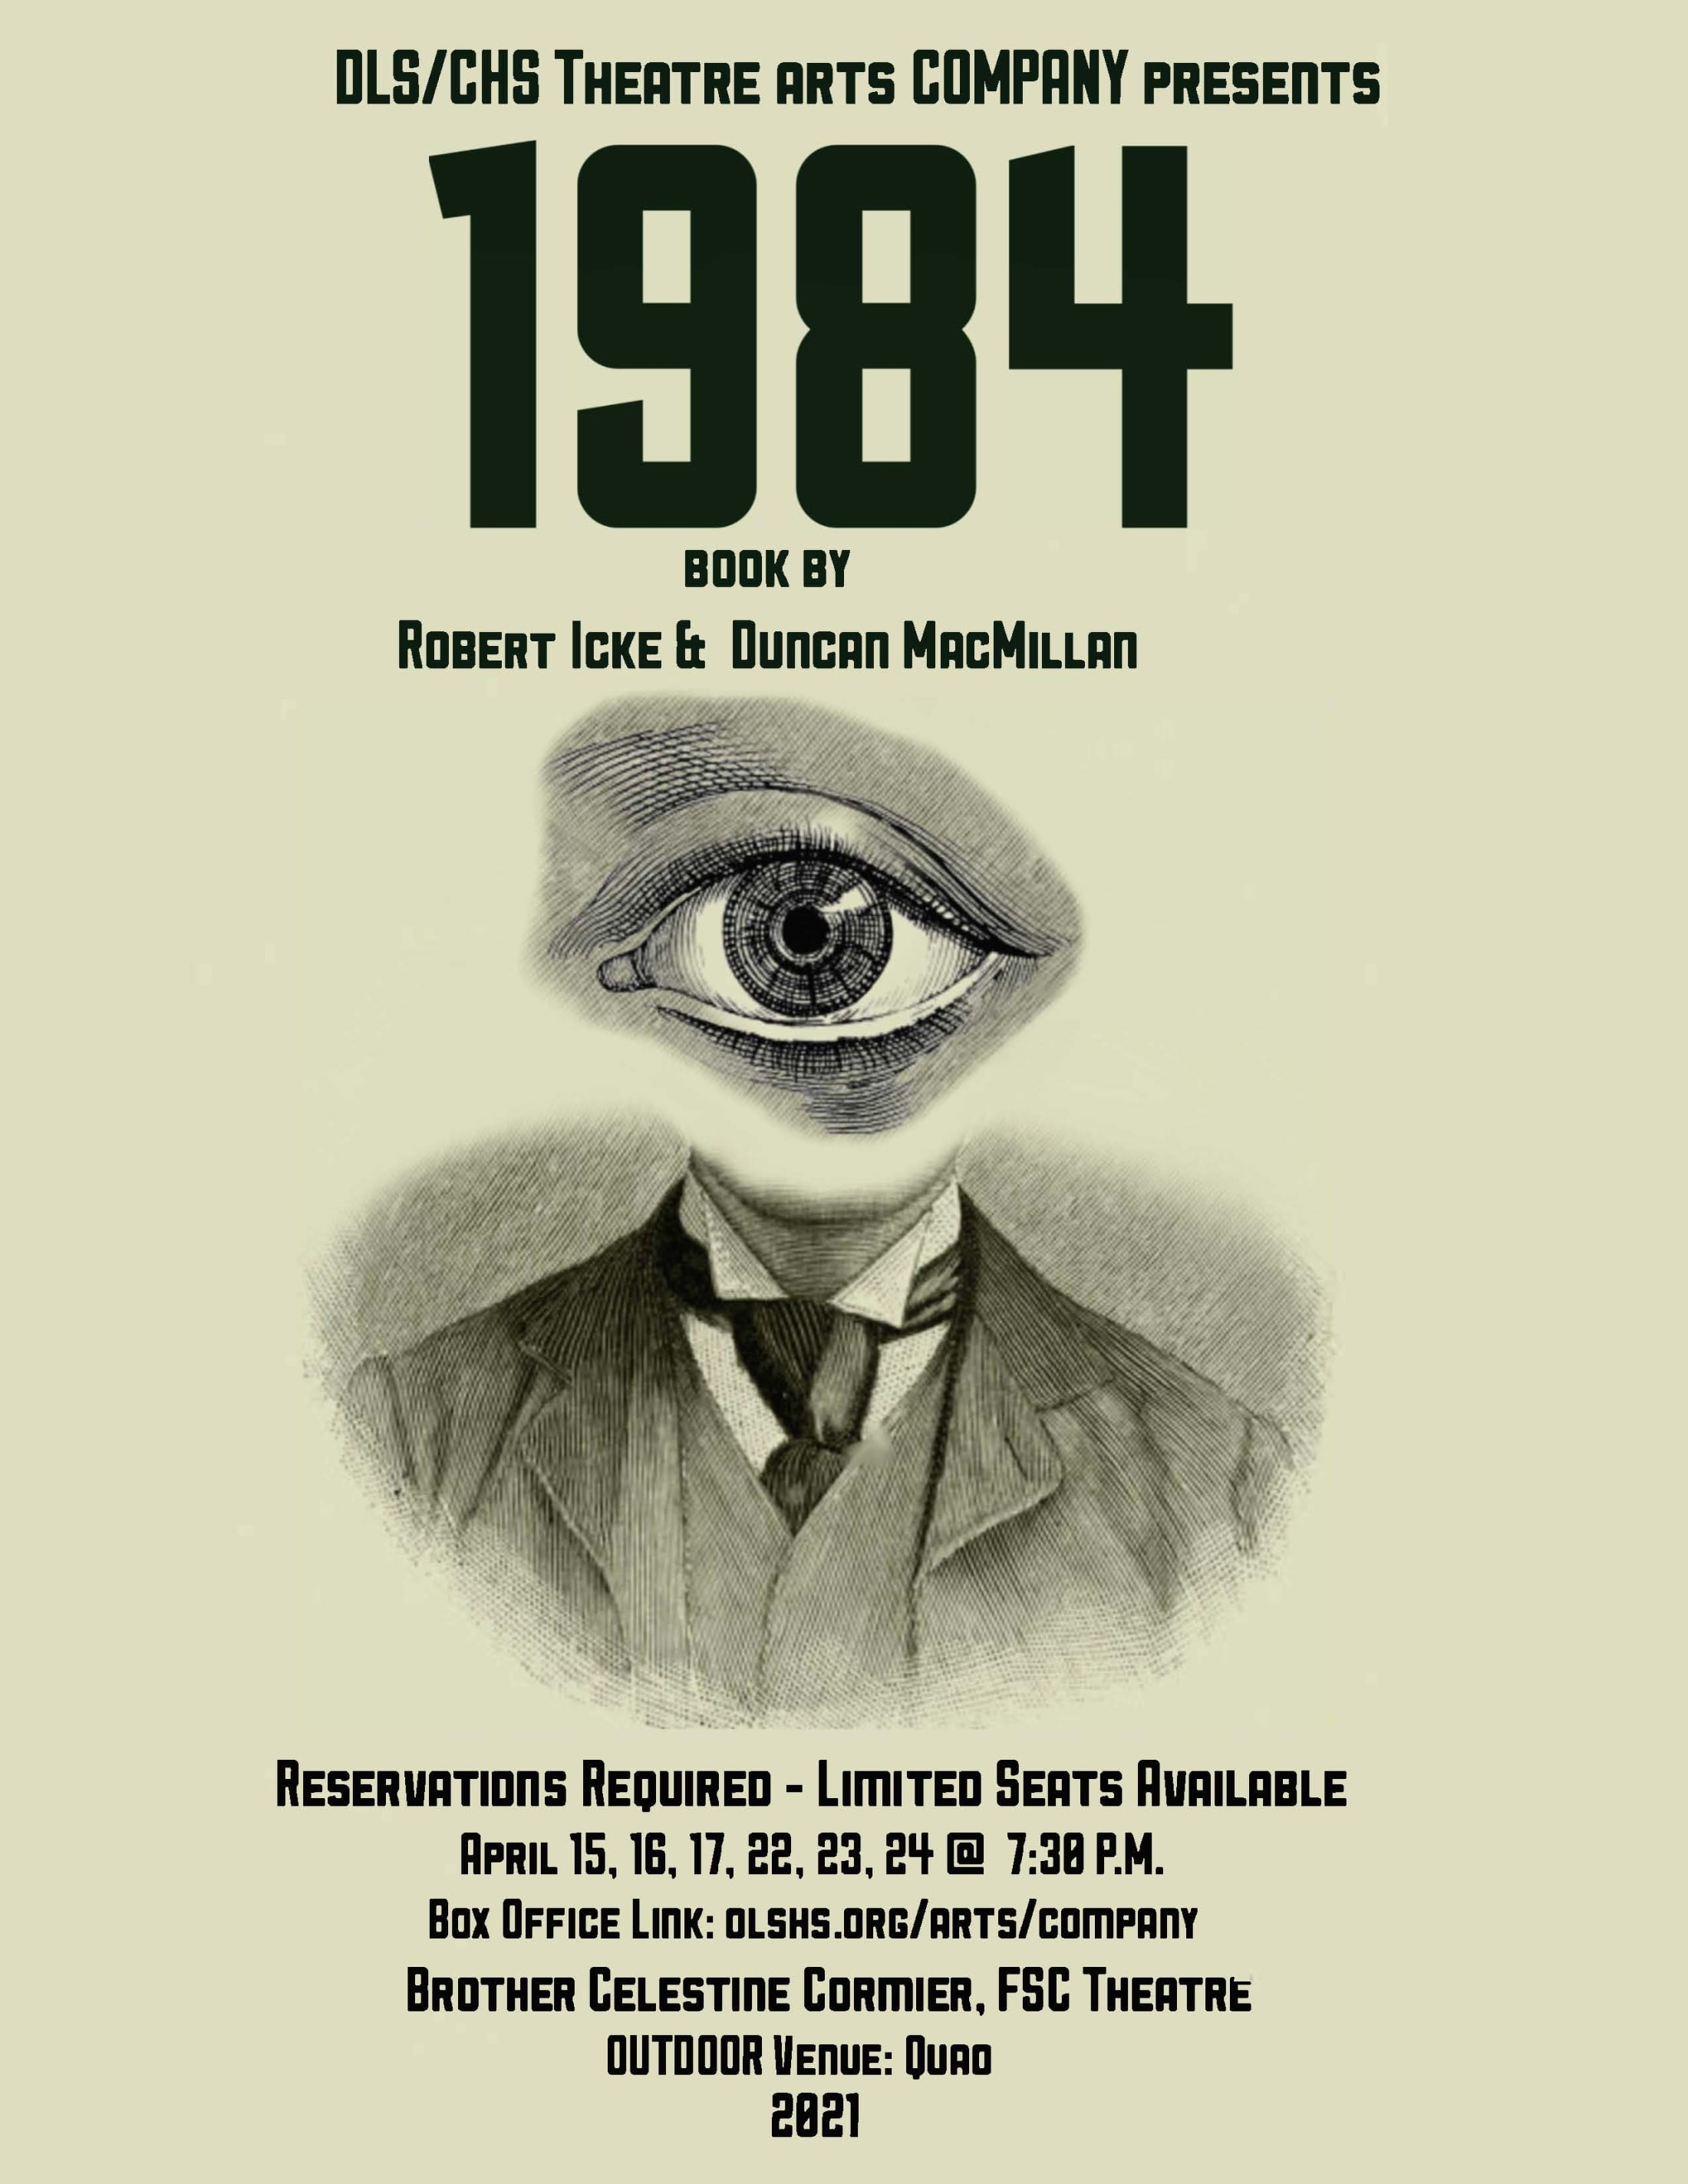 1984 Show Poster